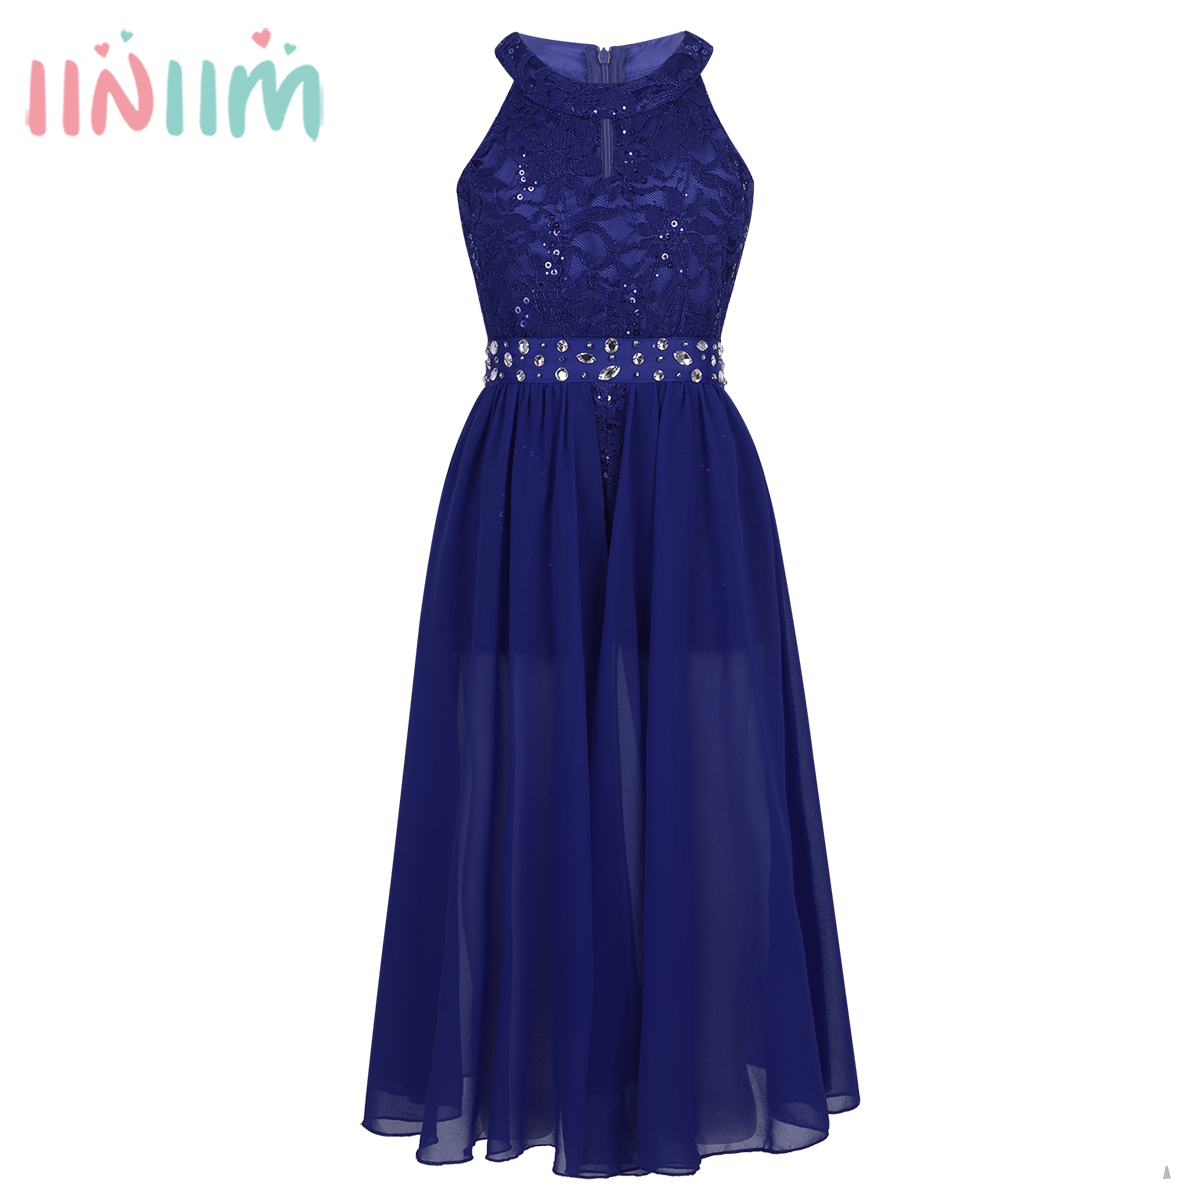 Elegant Girls Clothing Sleeveless Floral Lace Rhinestone Maxi Romper Dress School Dance Performance Dress for Birthday Party цена